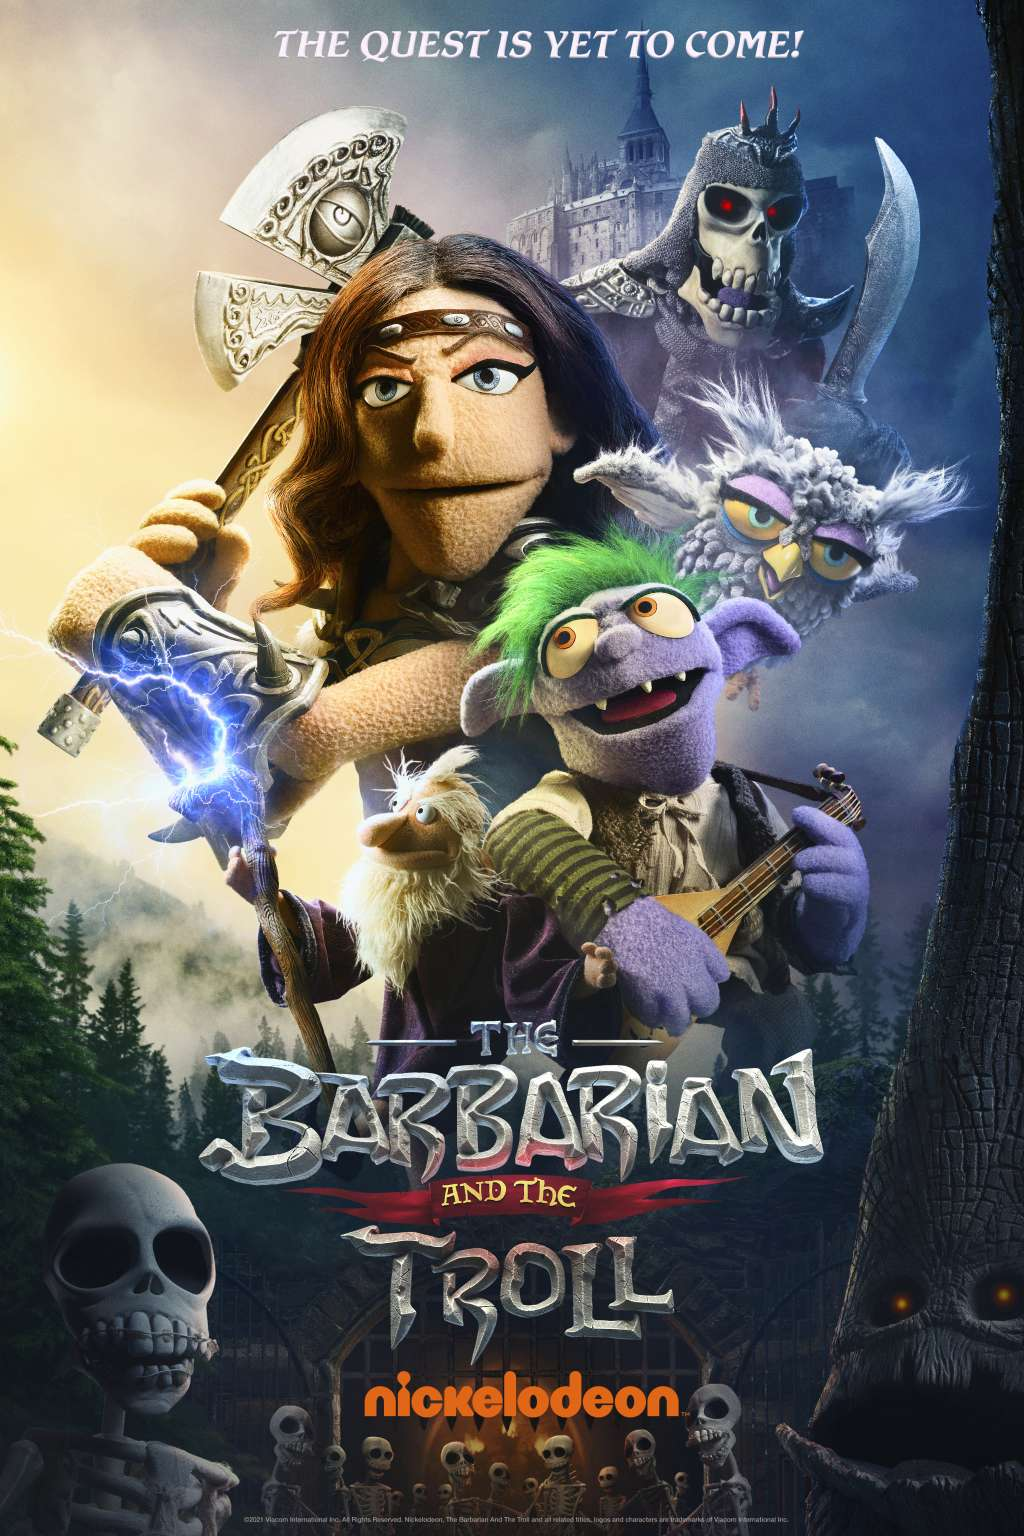 The Barbarian and the Troll kapak